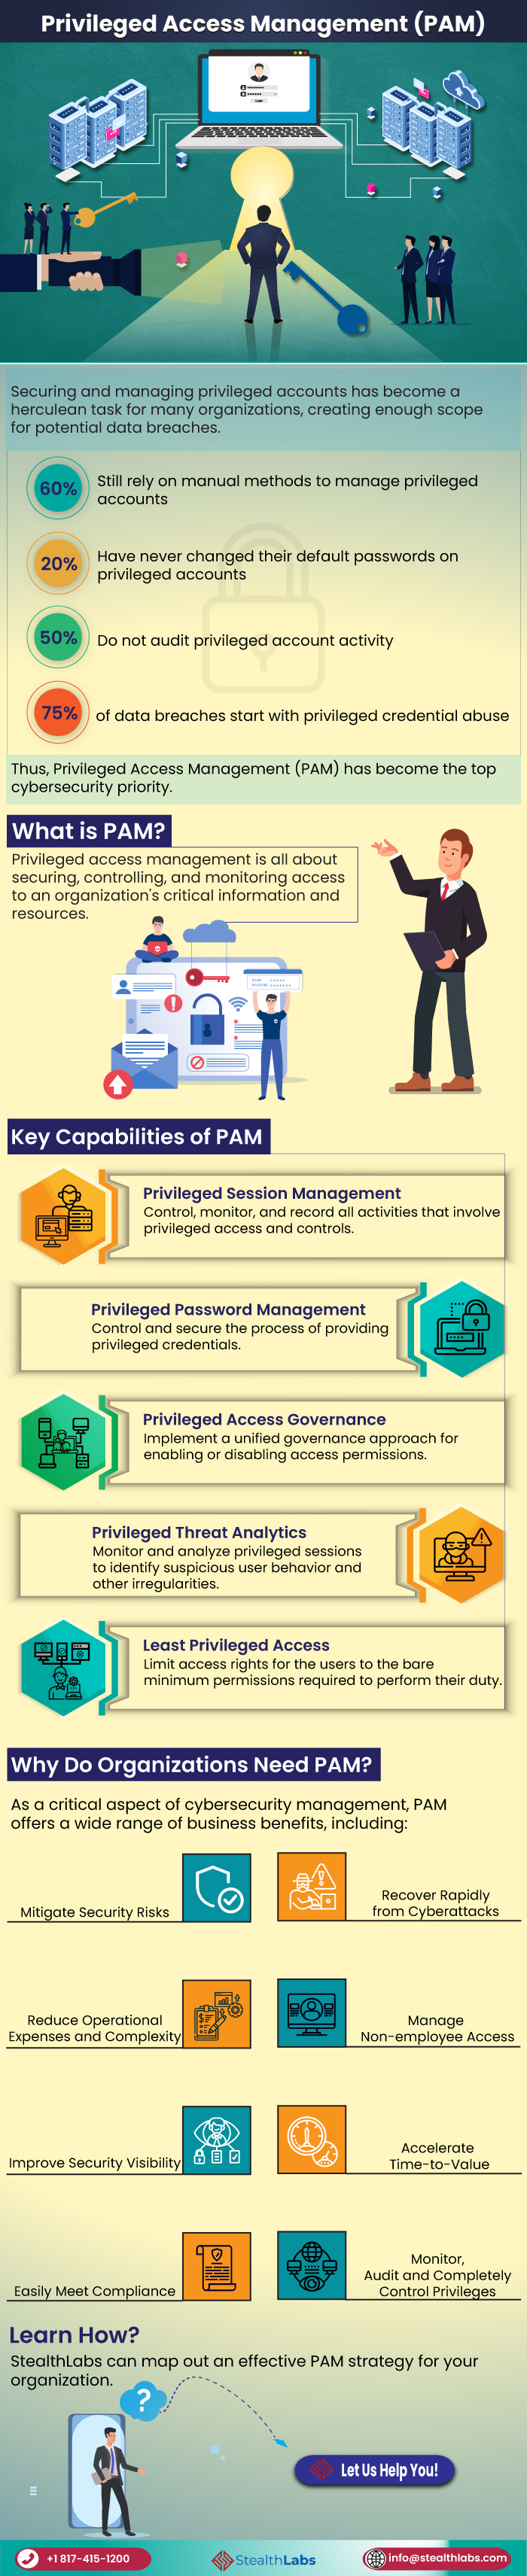 Infographic: Why do organizations need Privileged Access Management (PAM) solutions?